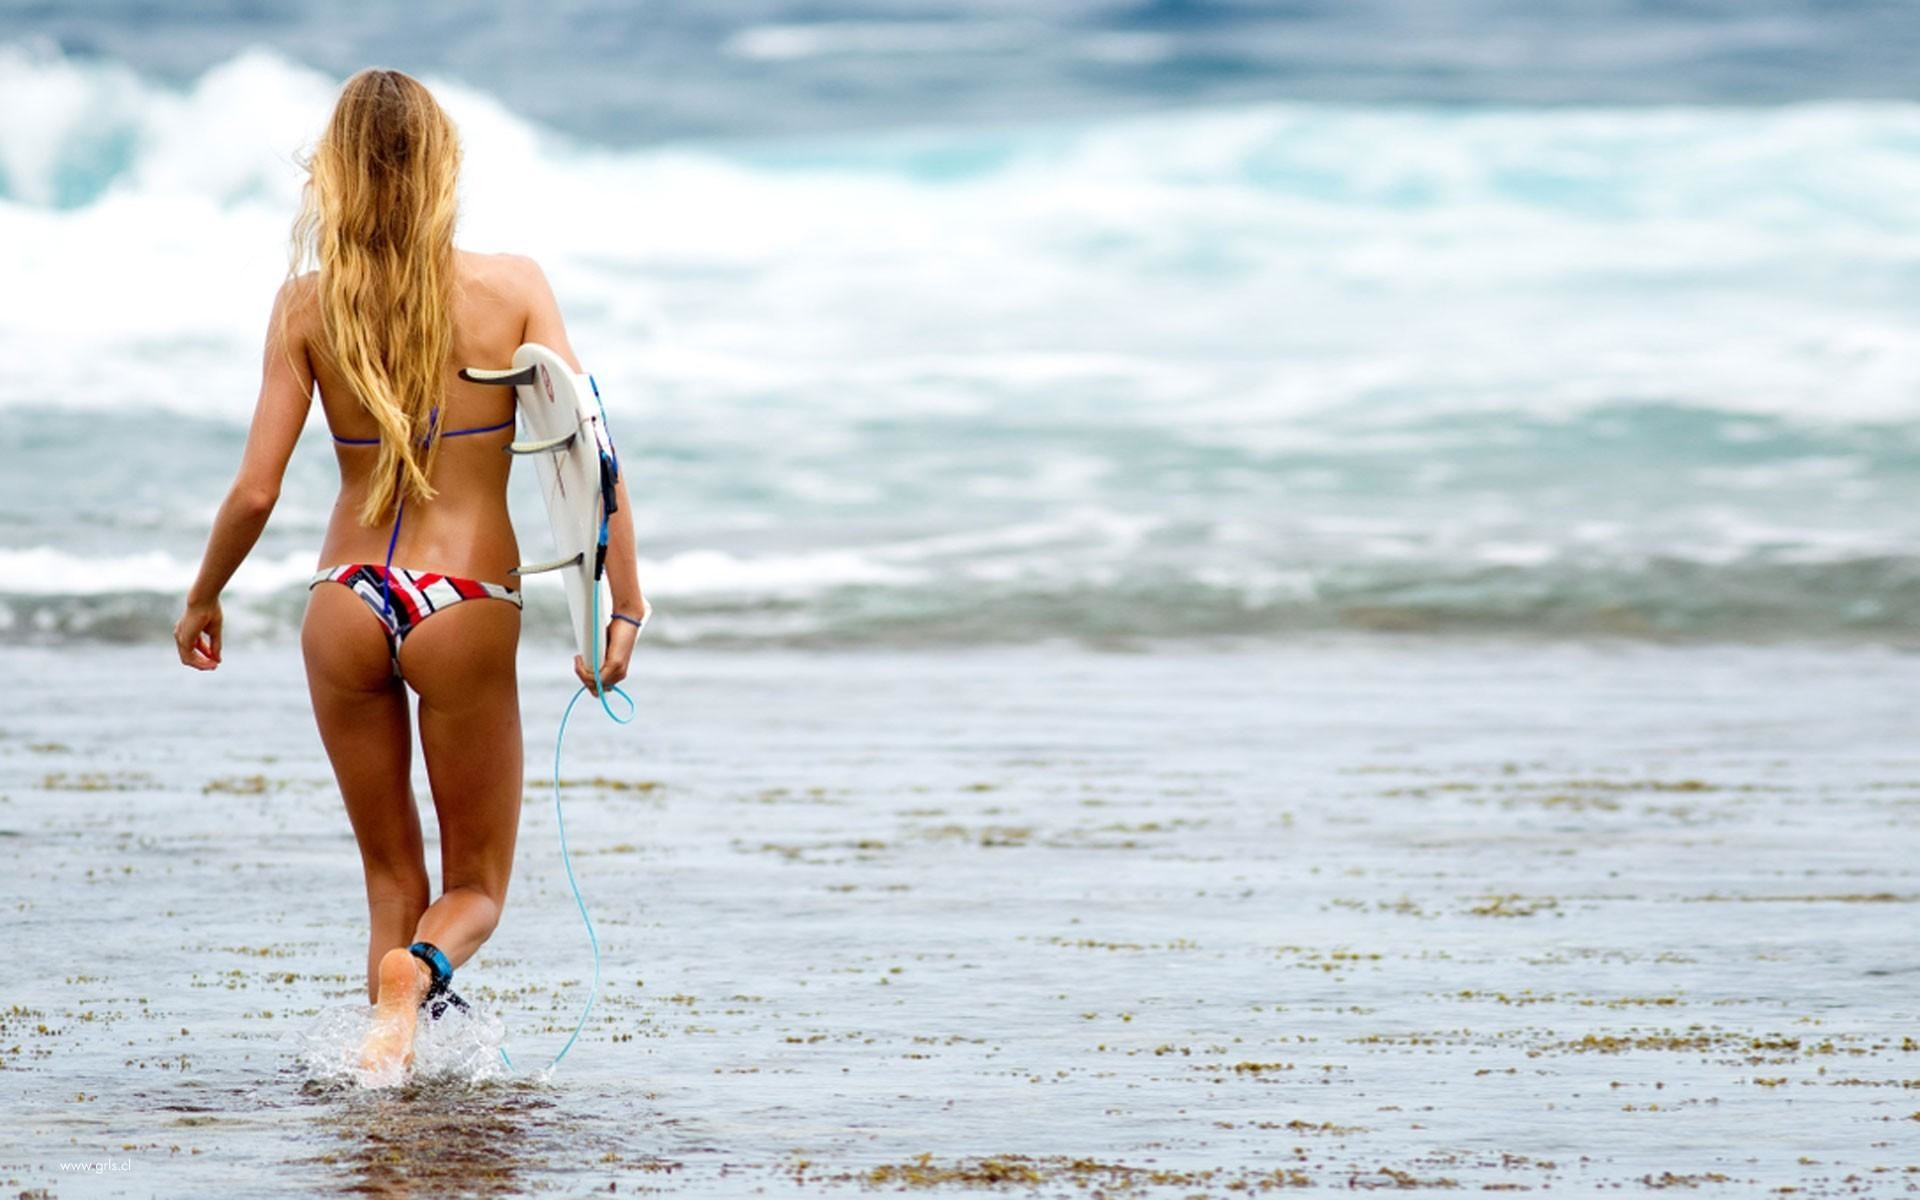 Alana Blanchard Wallpaper HD Pictures